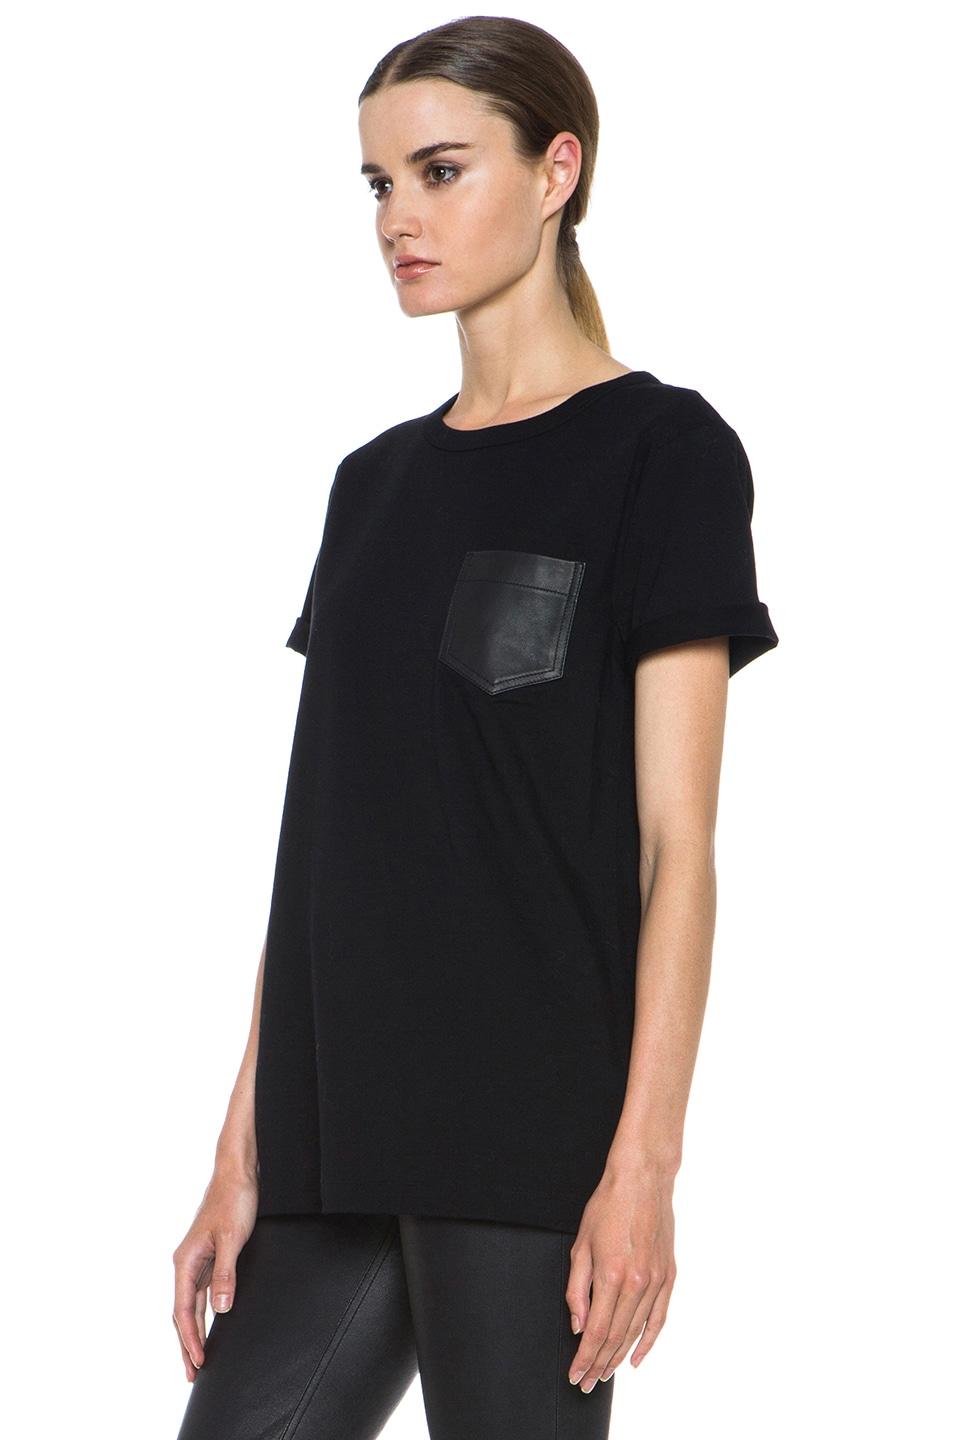 Image 2 of T by Alexander Wang Supima Jersey Tee with Leather Pocket in Black